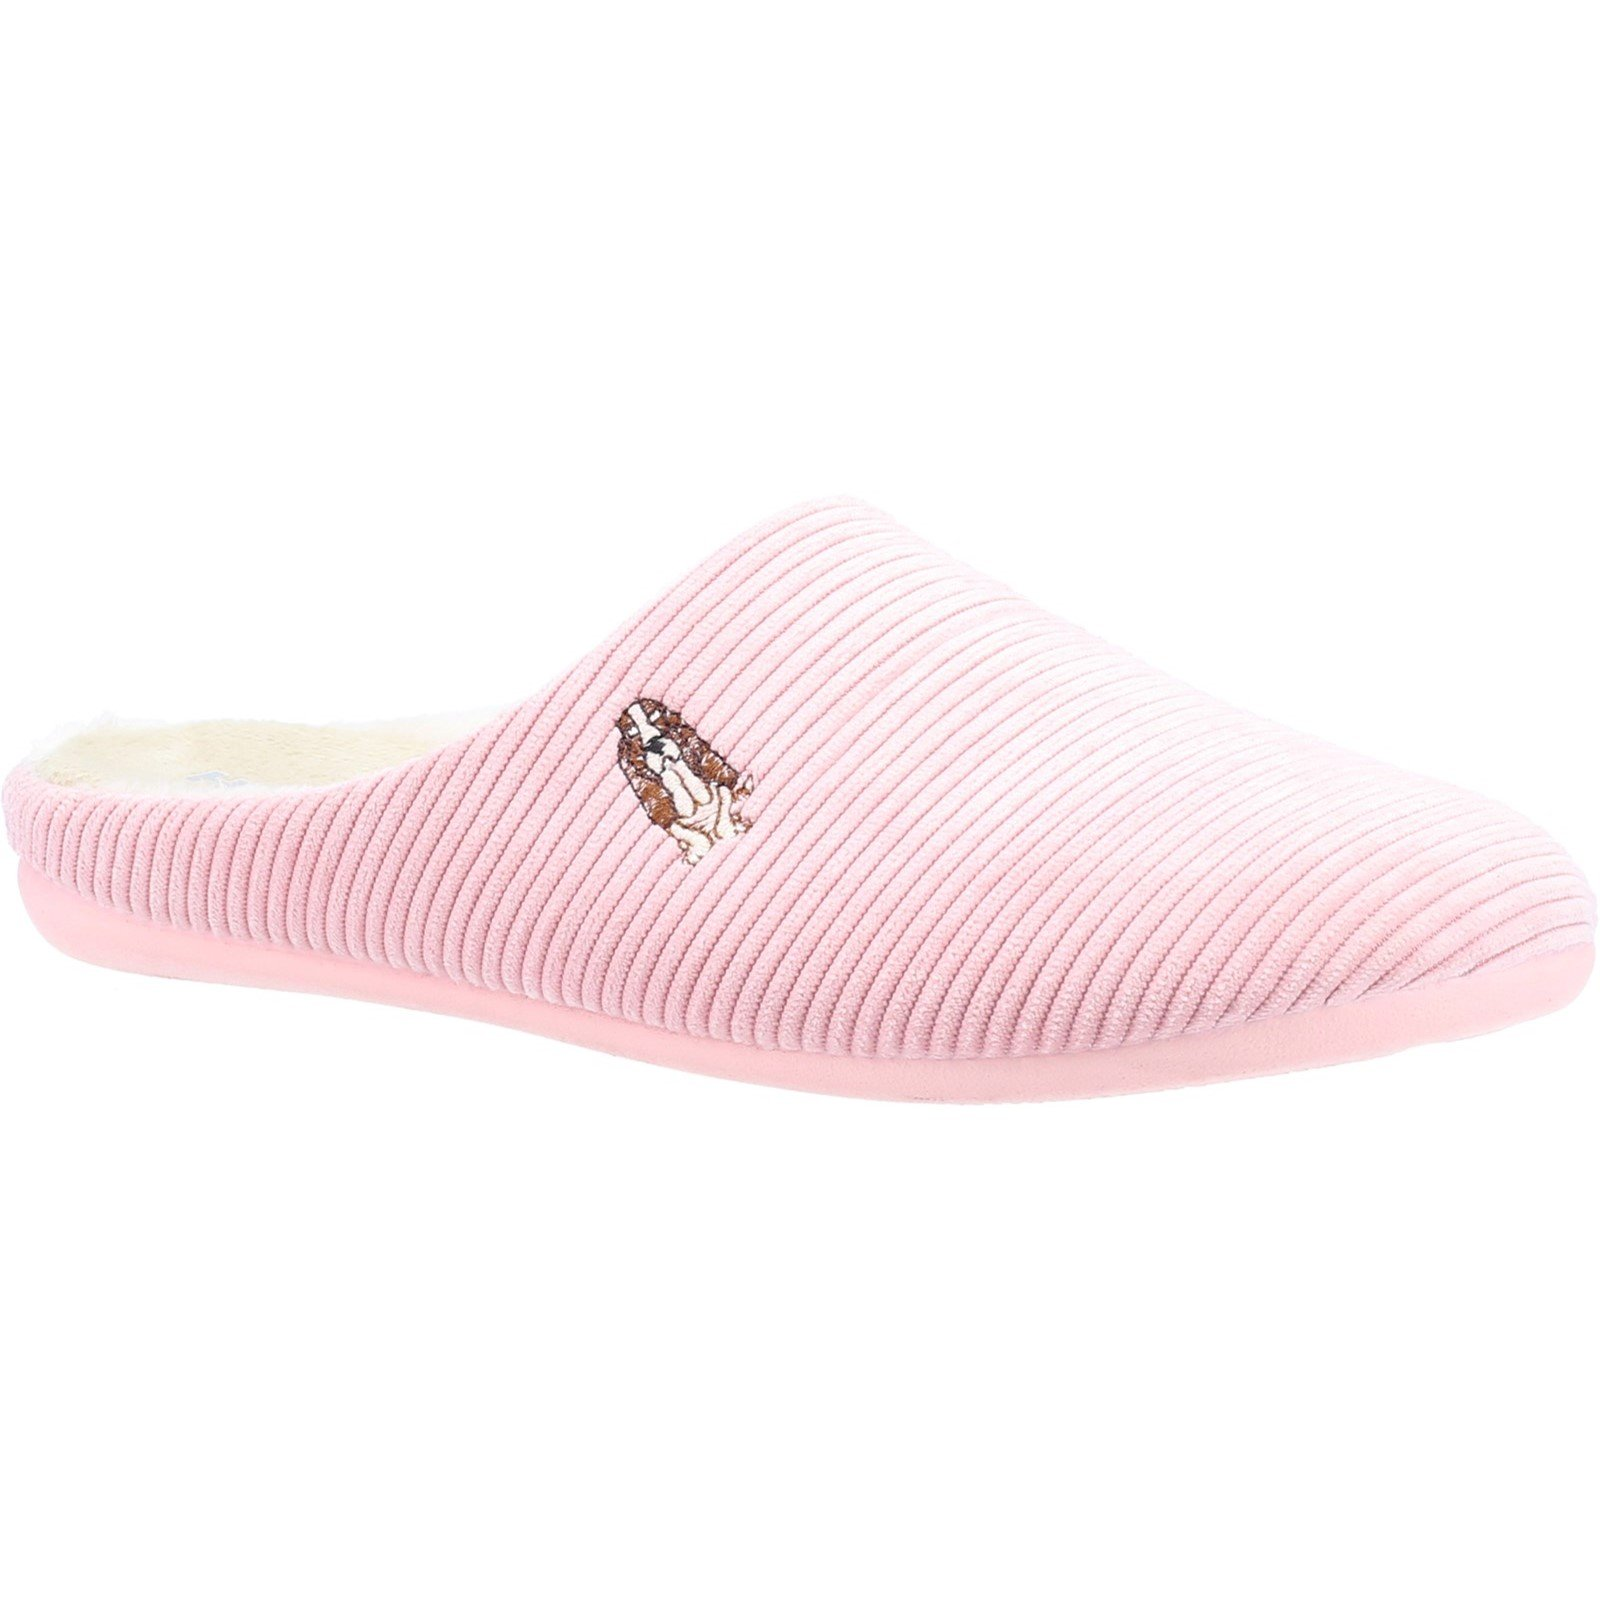 Hush Puppies Women's Raelyn Slipper Various Colours 32854 - Pink 5